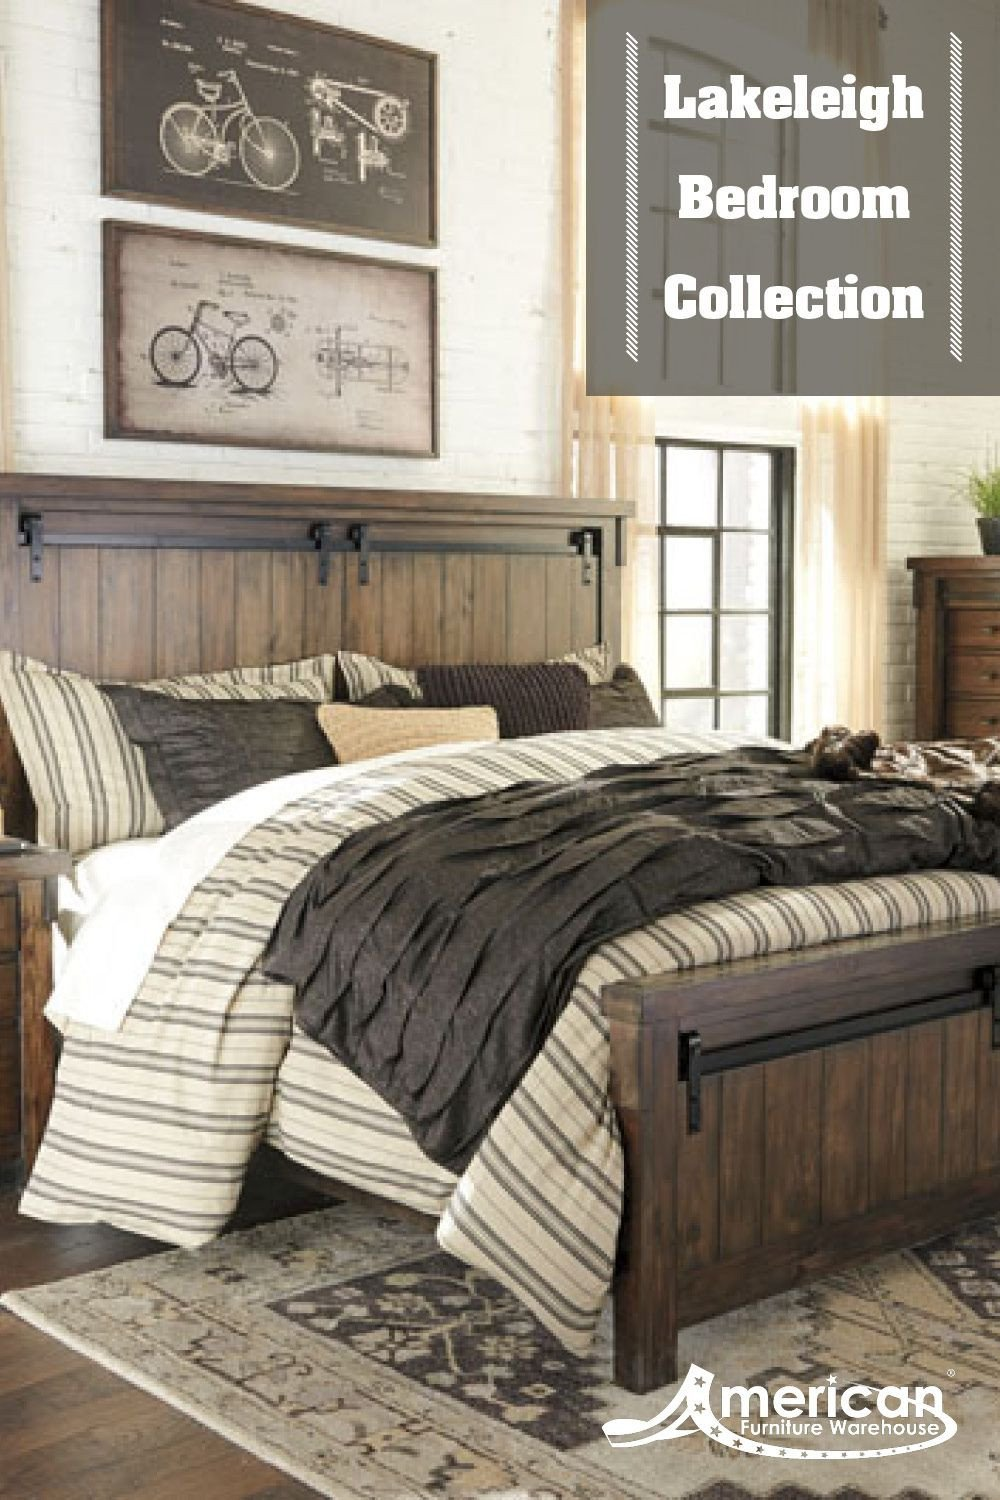 Bedroom Furniture Set King Unique Lakeleigh 5 Piece Bedroom Set